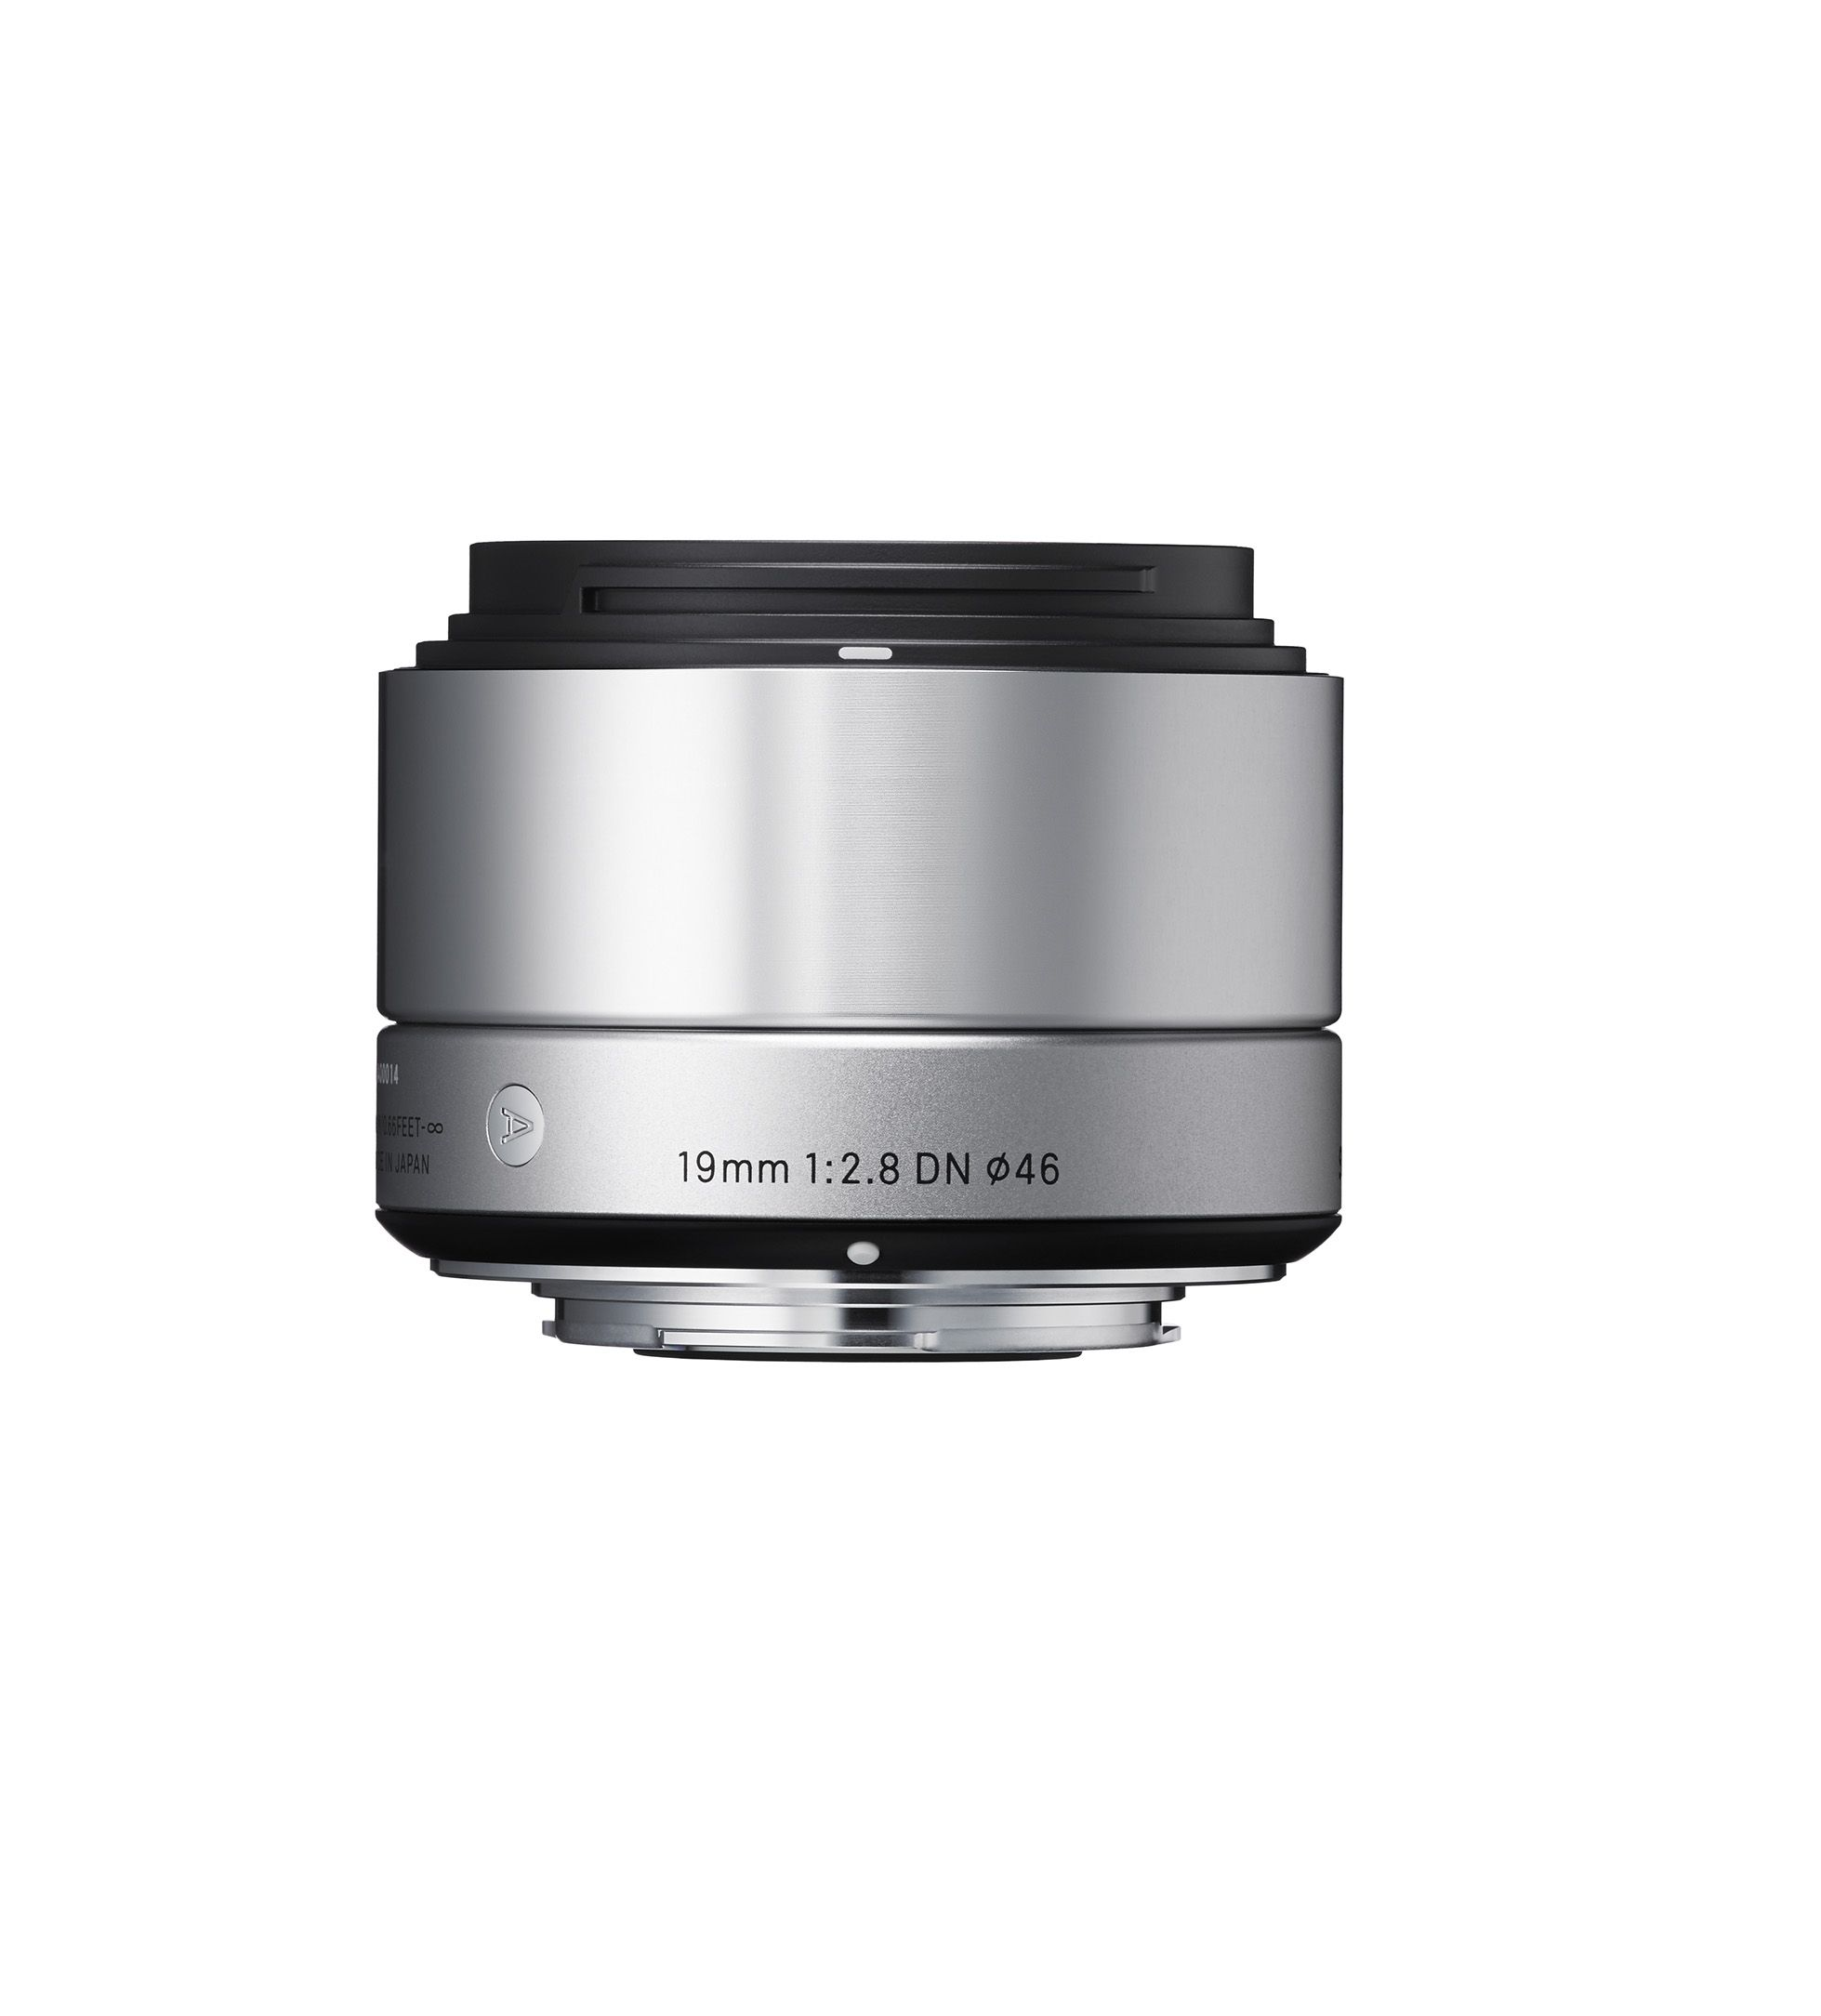 Sigma 19mm F2 8 Dn This High Performance Wide Angle Lens Has An Angle Of View Equivale Studio Photography Studios Architecture Amazing Photography